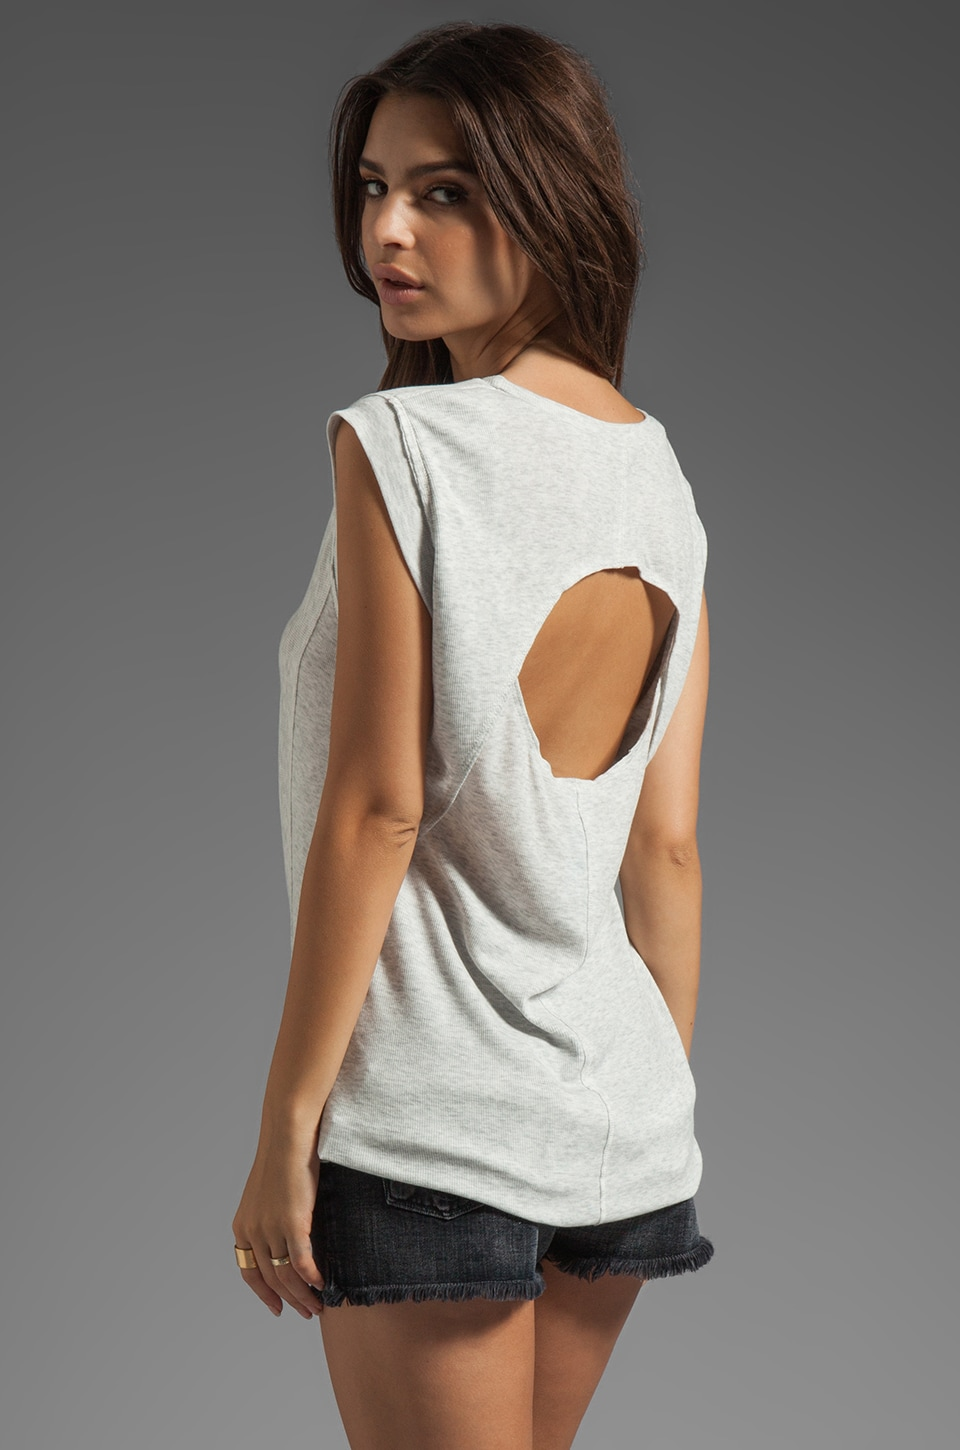 Heather Hi-Lo Open Back Tee in White